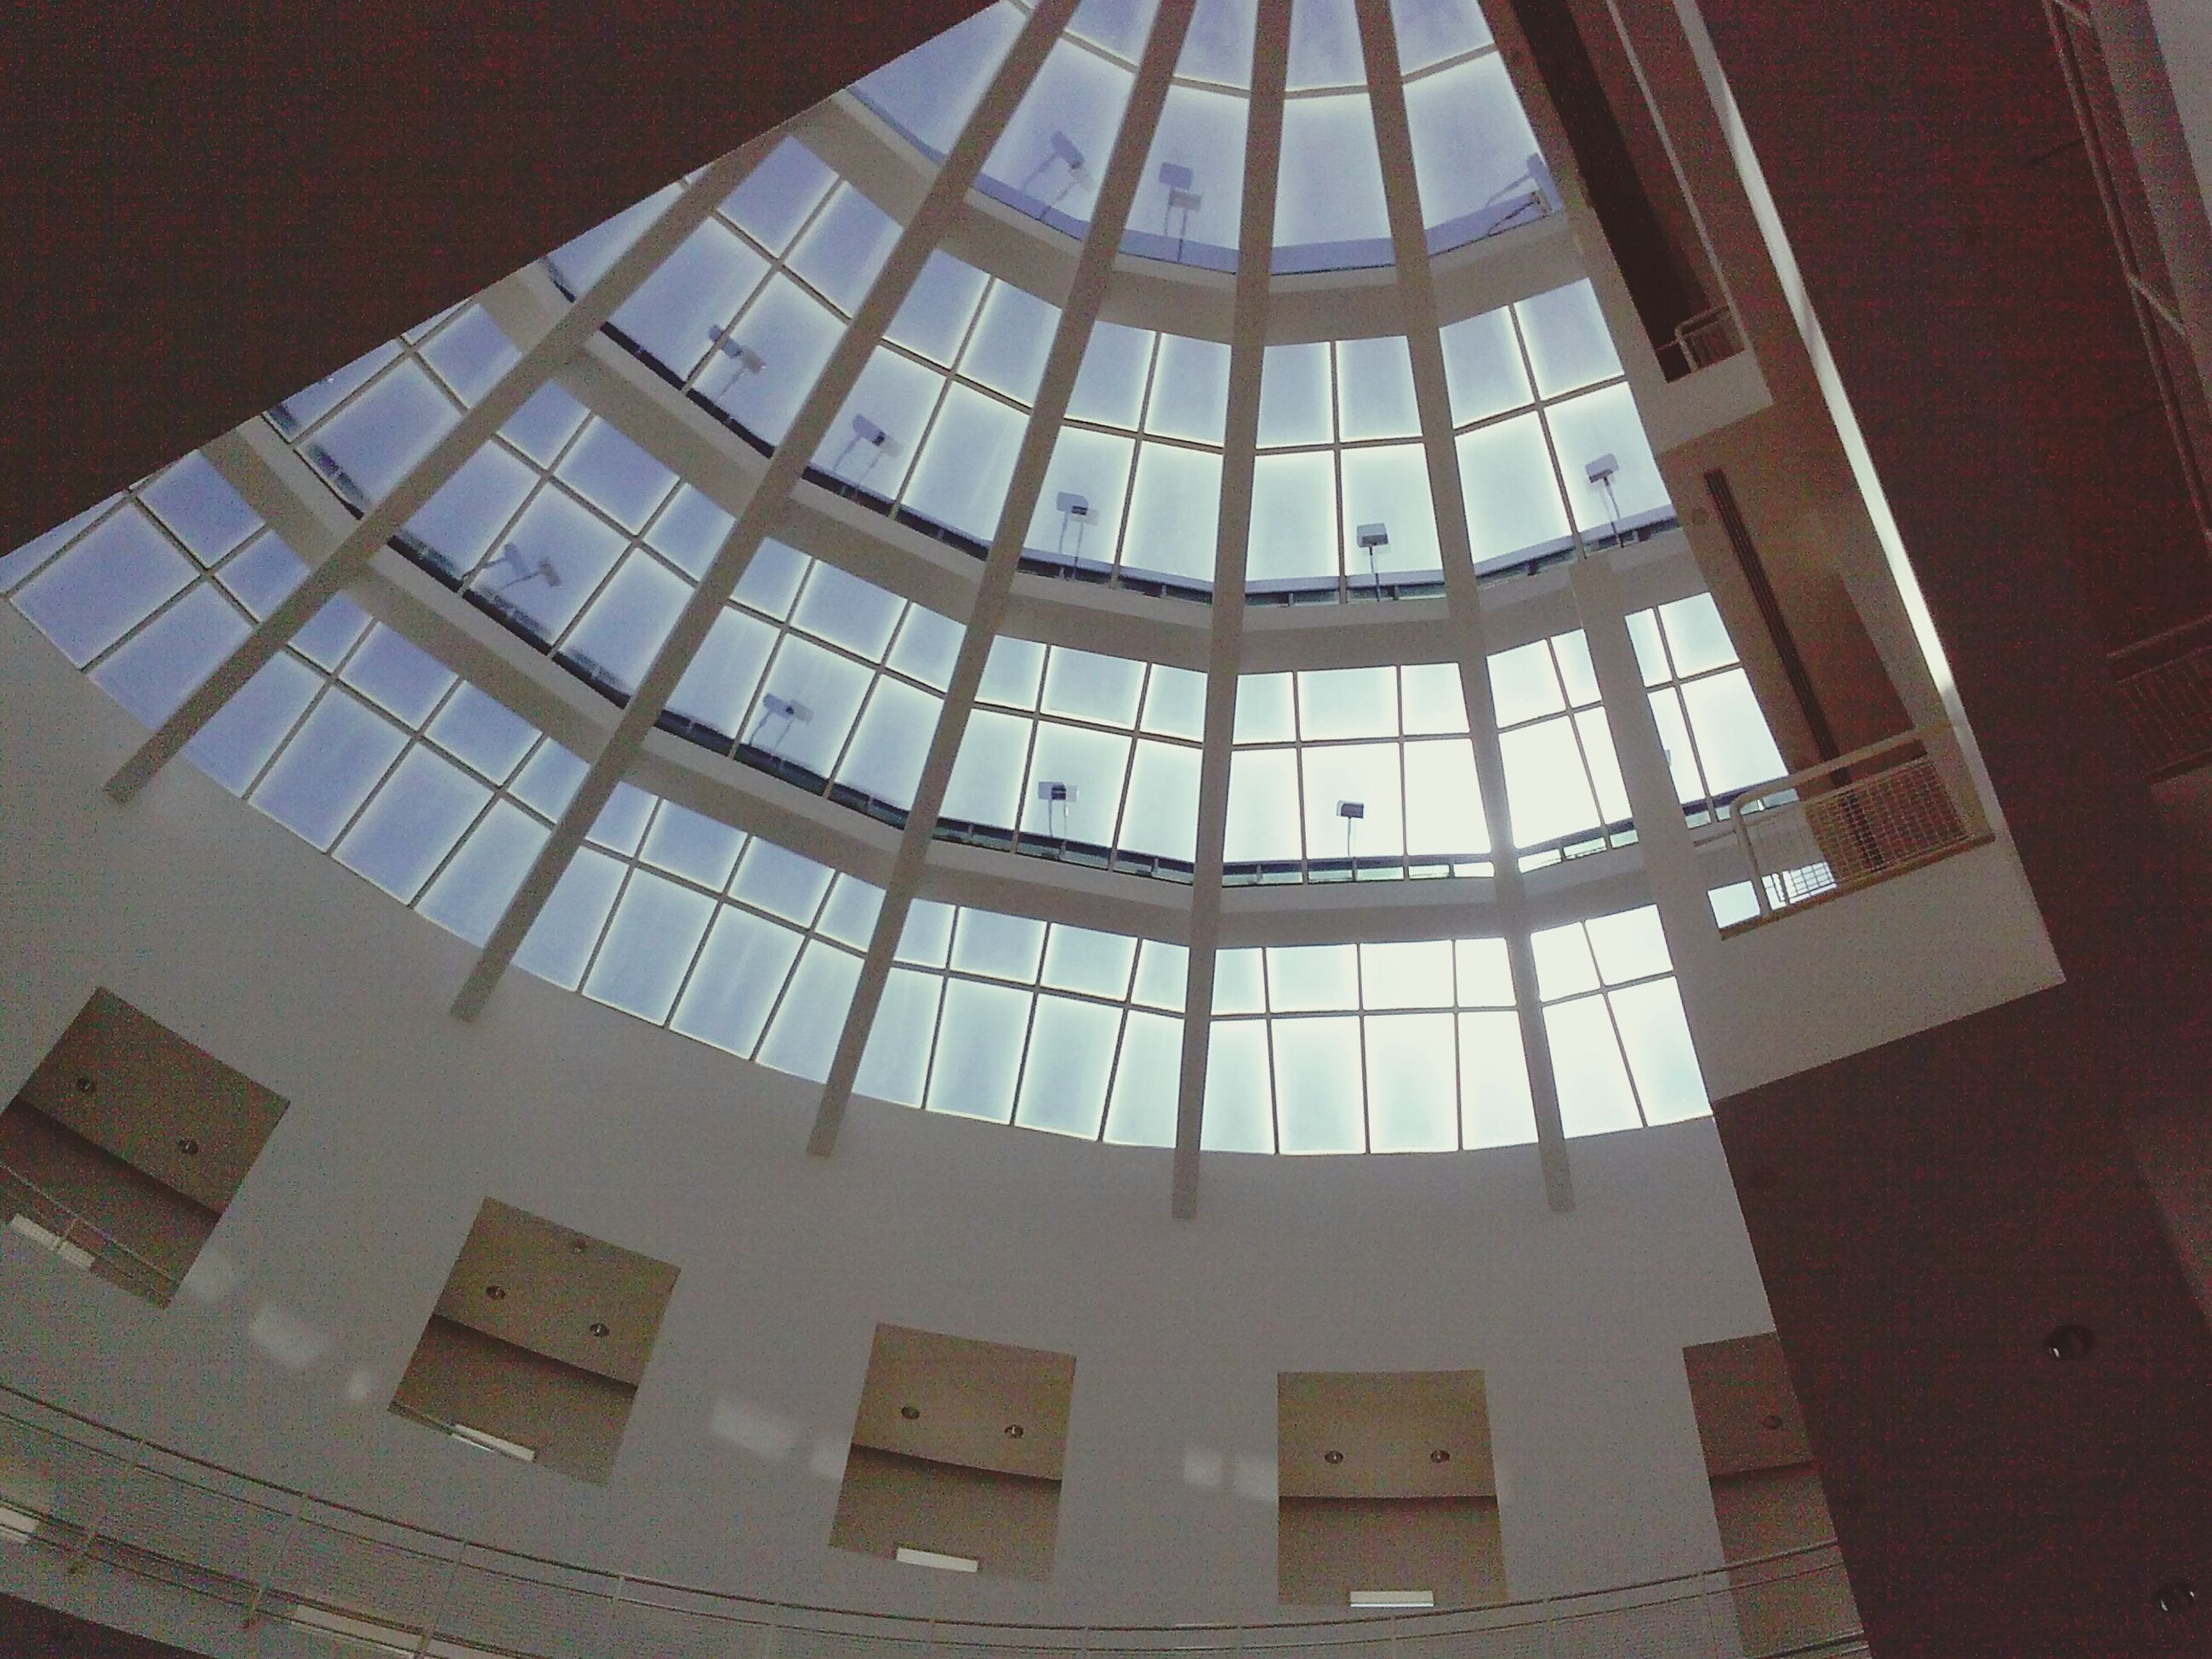 indoors, architecture, built structure, ceiling, low angle view, glass - material, architectural feature, pattern, window, skylight, modern, design, transparent, interior, building exterior, famous place, building, no people, geometric shape, directly below